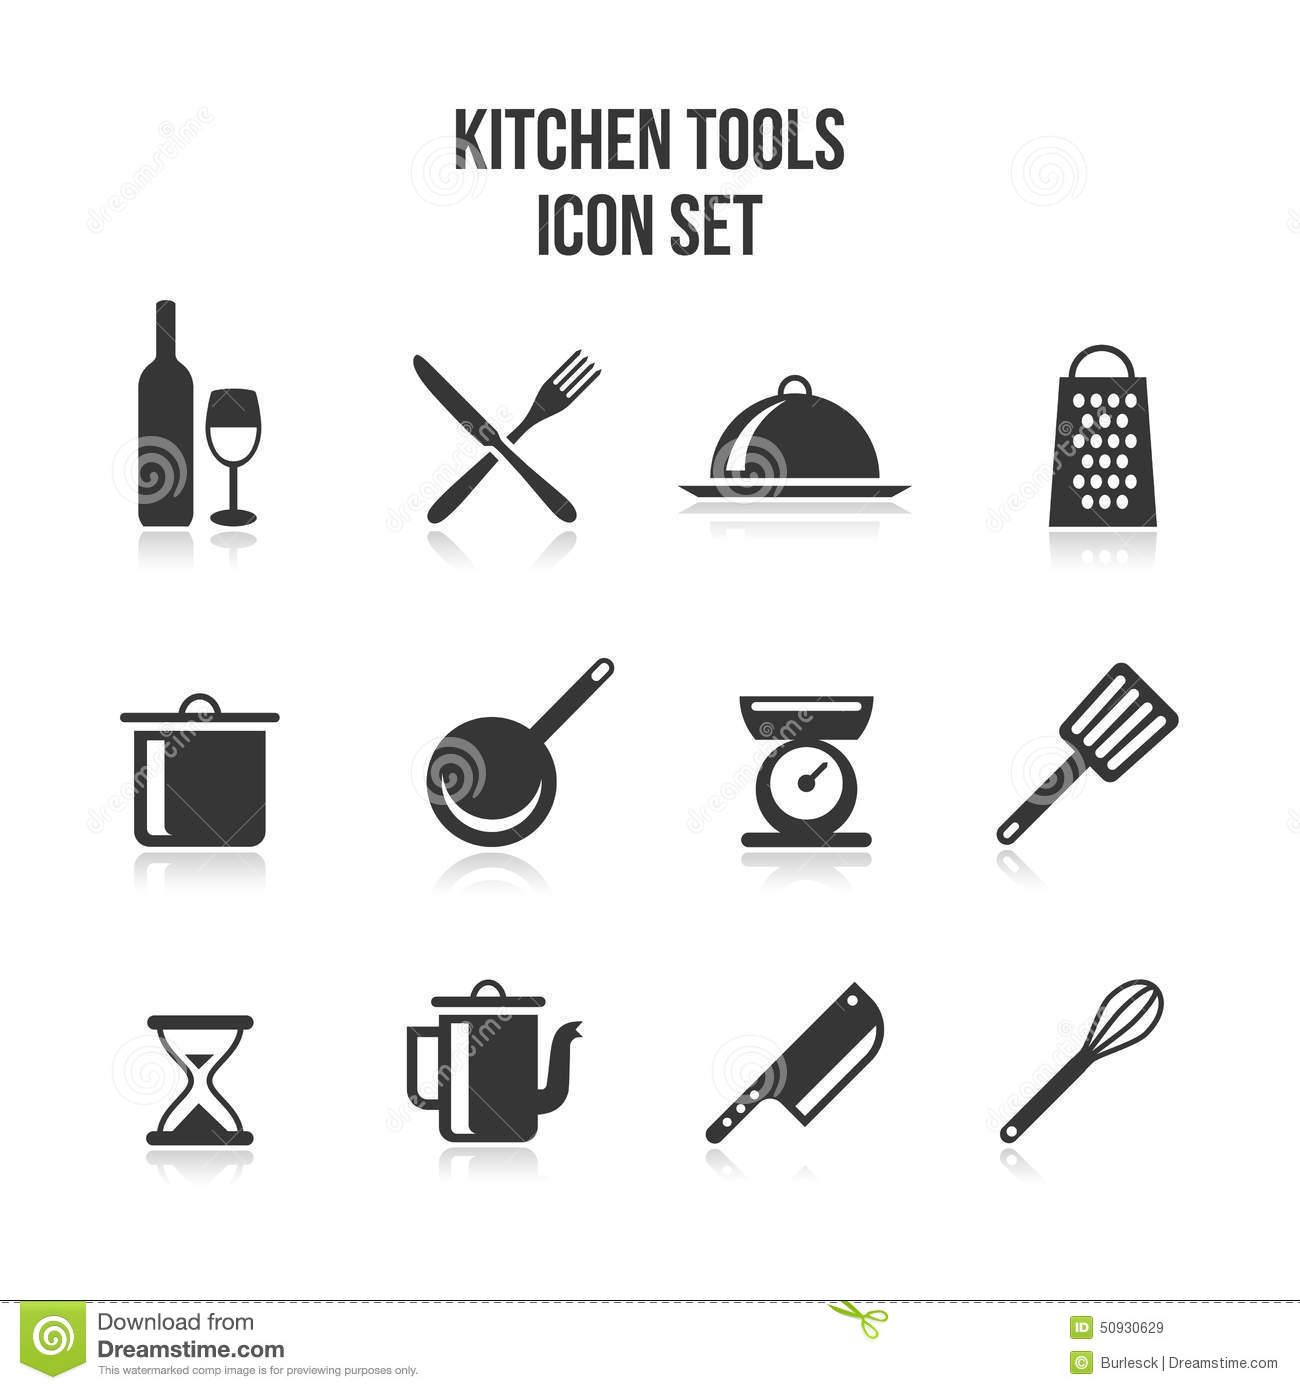 Lebensmittel Besteck Symbol as well Stock Illustration Chef With Spoon And Fork furthermore Restaurant Cutlery Symbol Of A Cross 52172 in addition Plate further Restaurant Menu Logo Icon 1710139. on fork and spoon